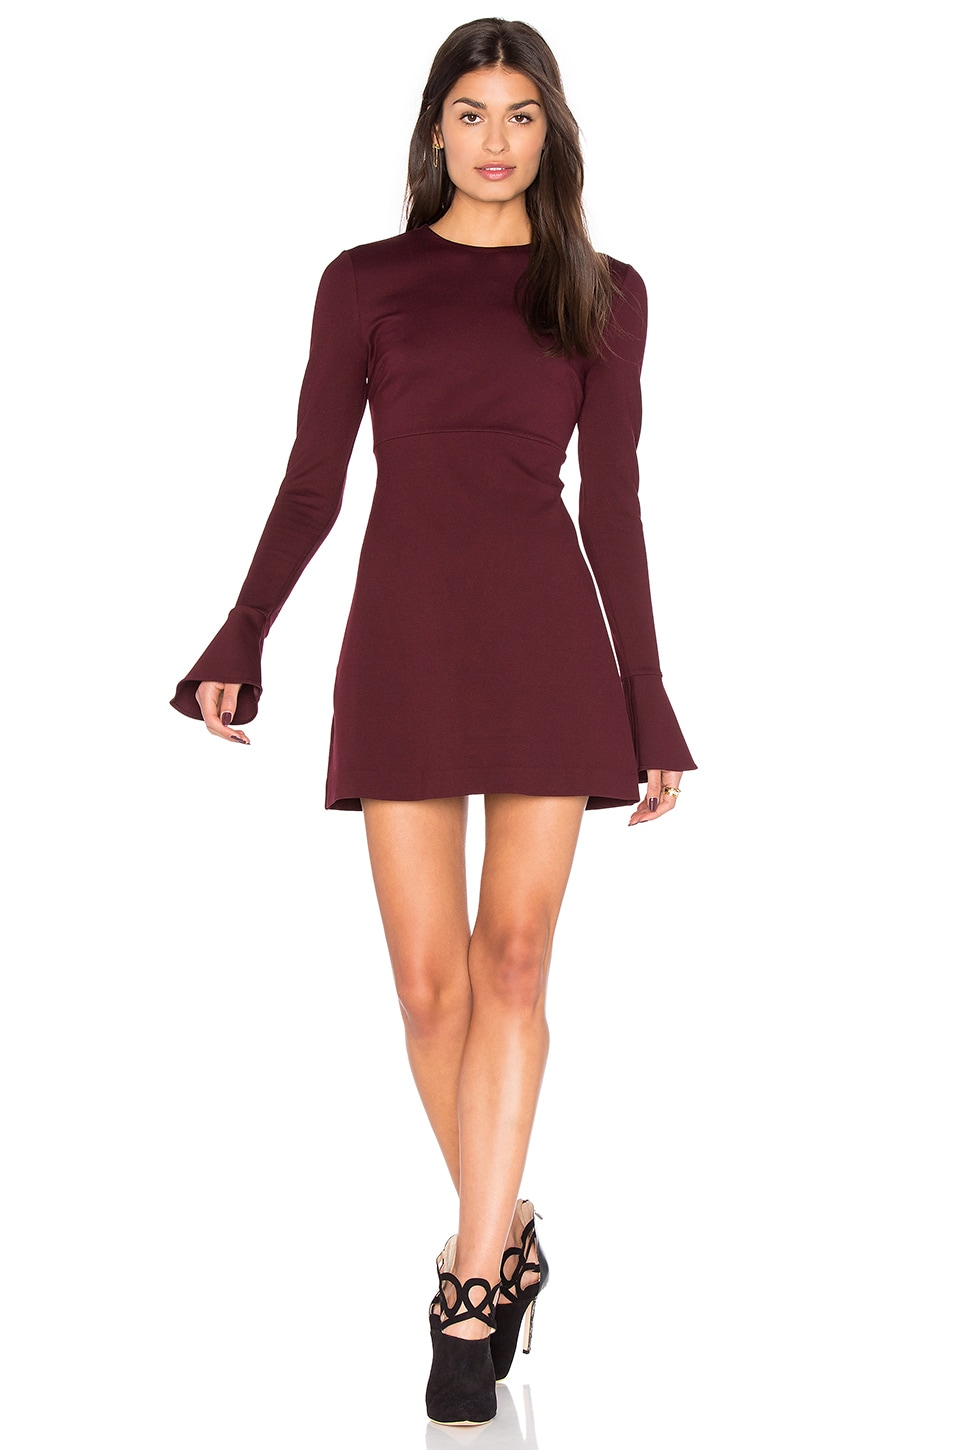 McQ Alexander McQueen Volant Long Sleeve Dress in Port